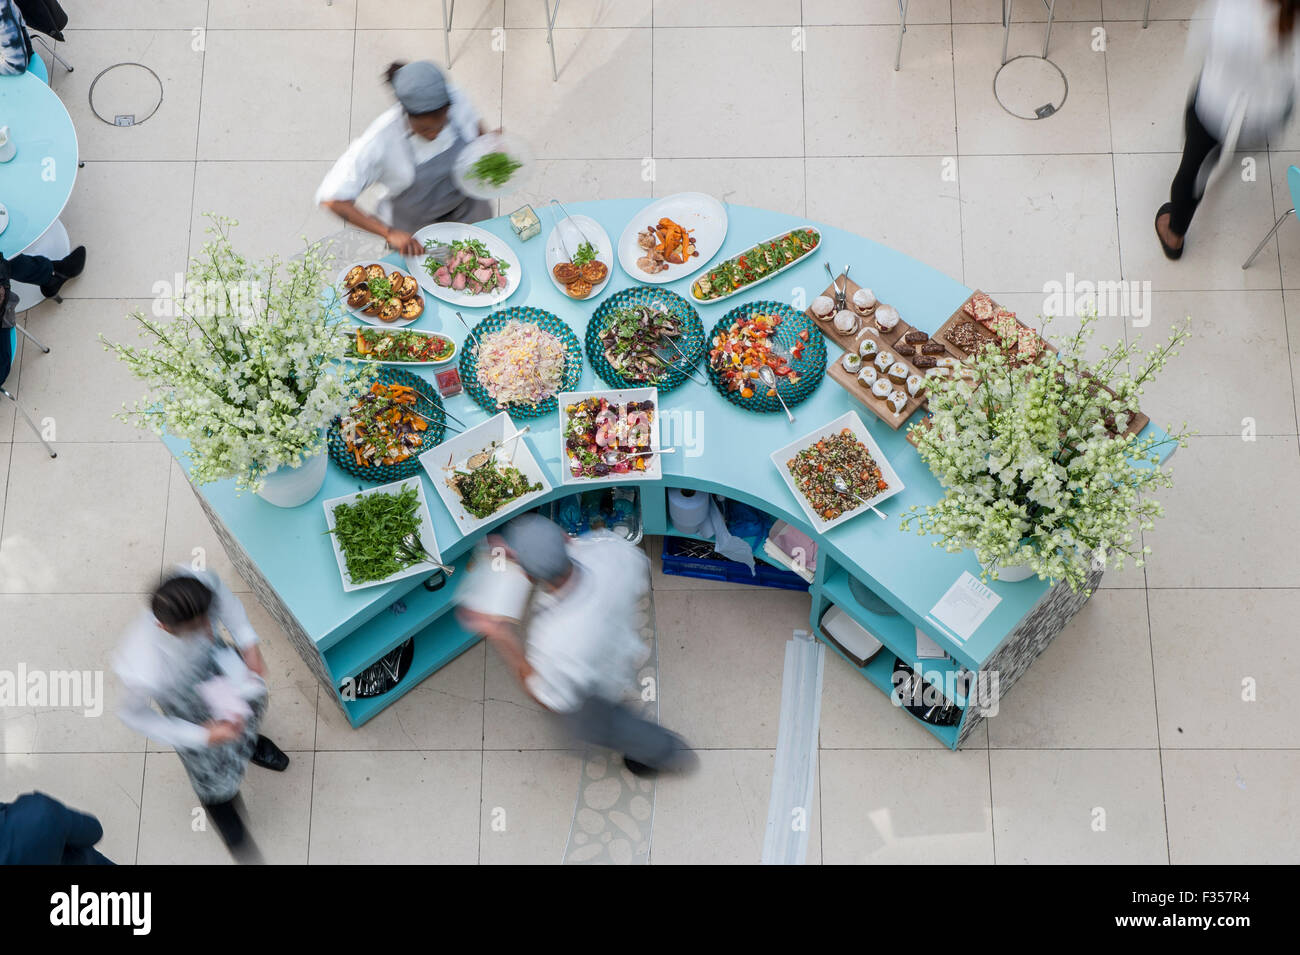 Chefs and waiters race around a food counter - Stock Image